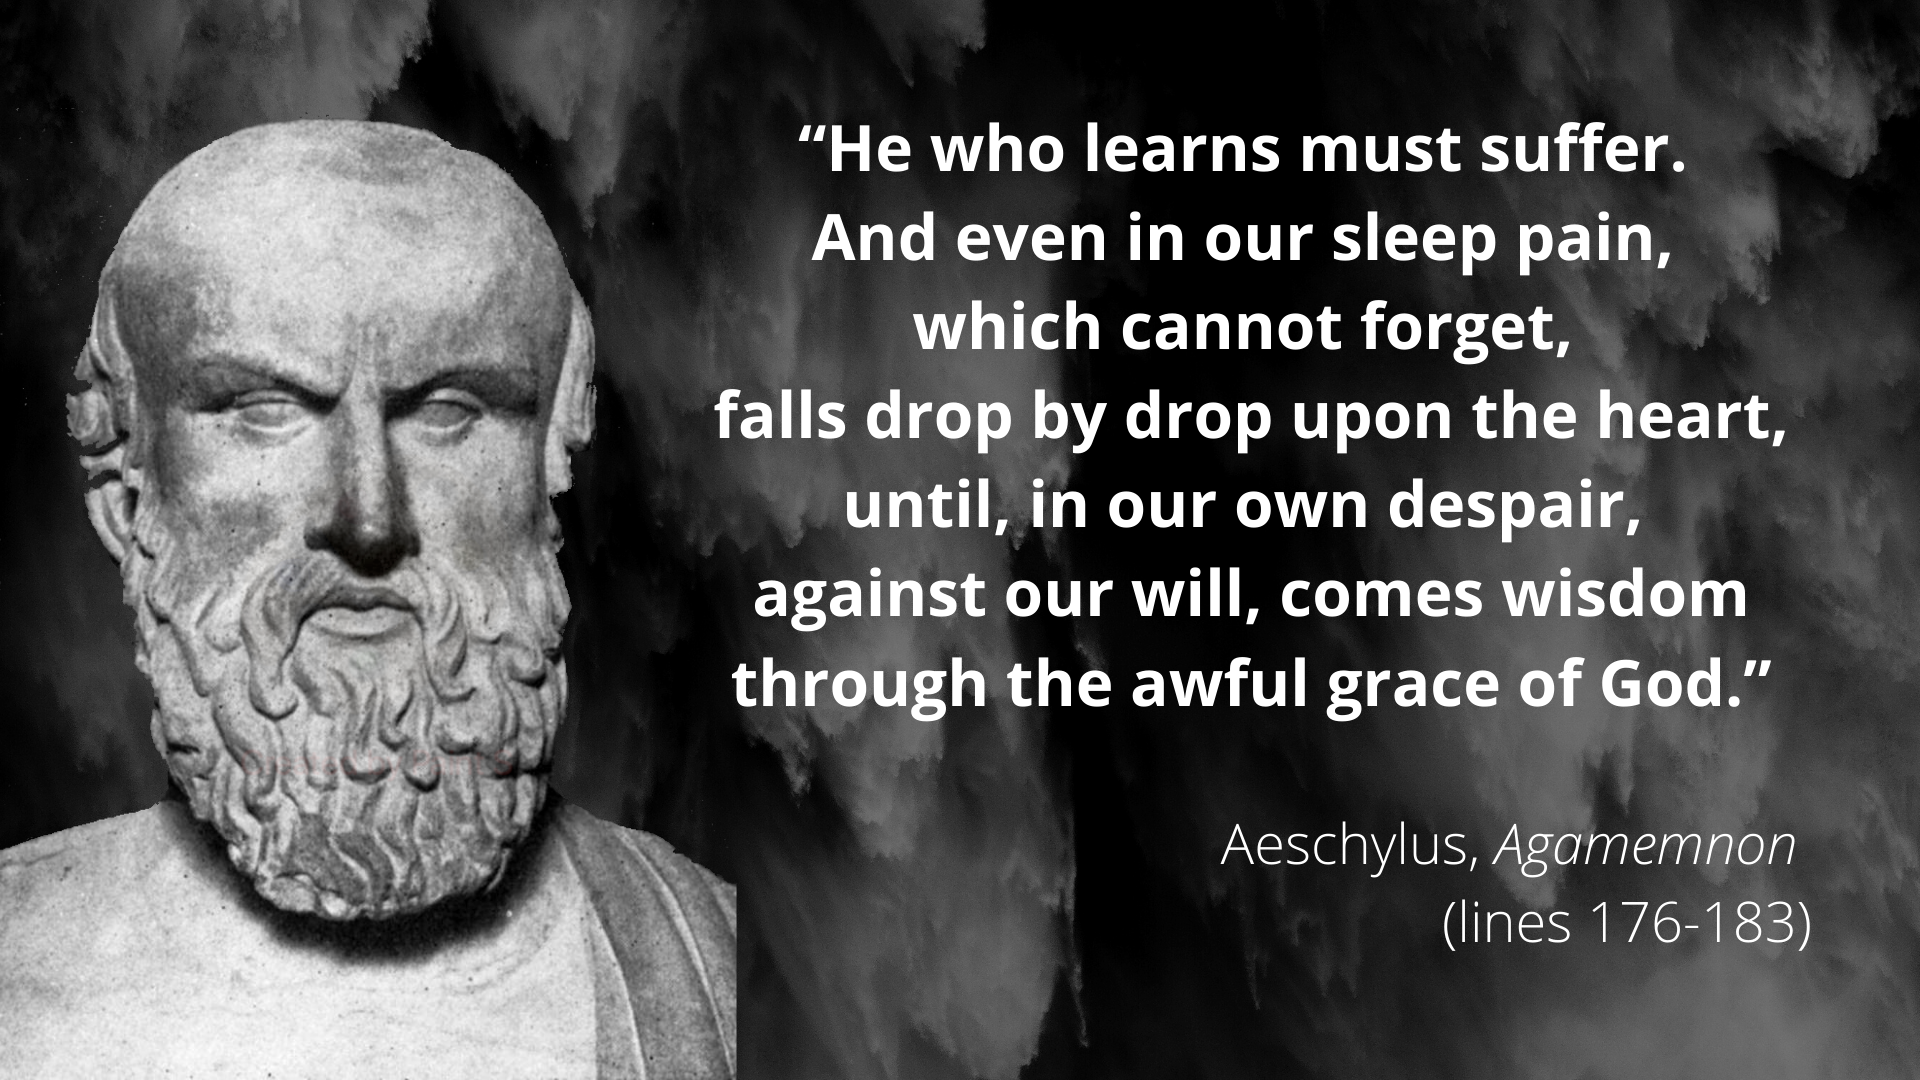 """Even in our sleep, pain which cannot forget falls drop by drop upon the heart until, in our own despair, against our will, comes wisdom through the awful grace of God."" – Aeschylus [1920 × 1080]"